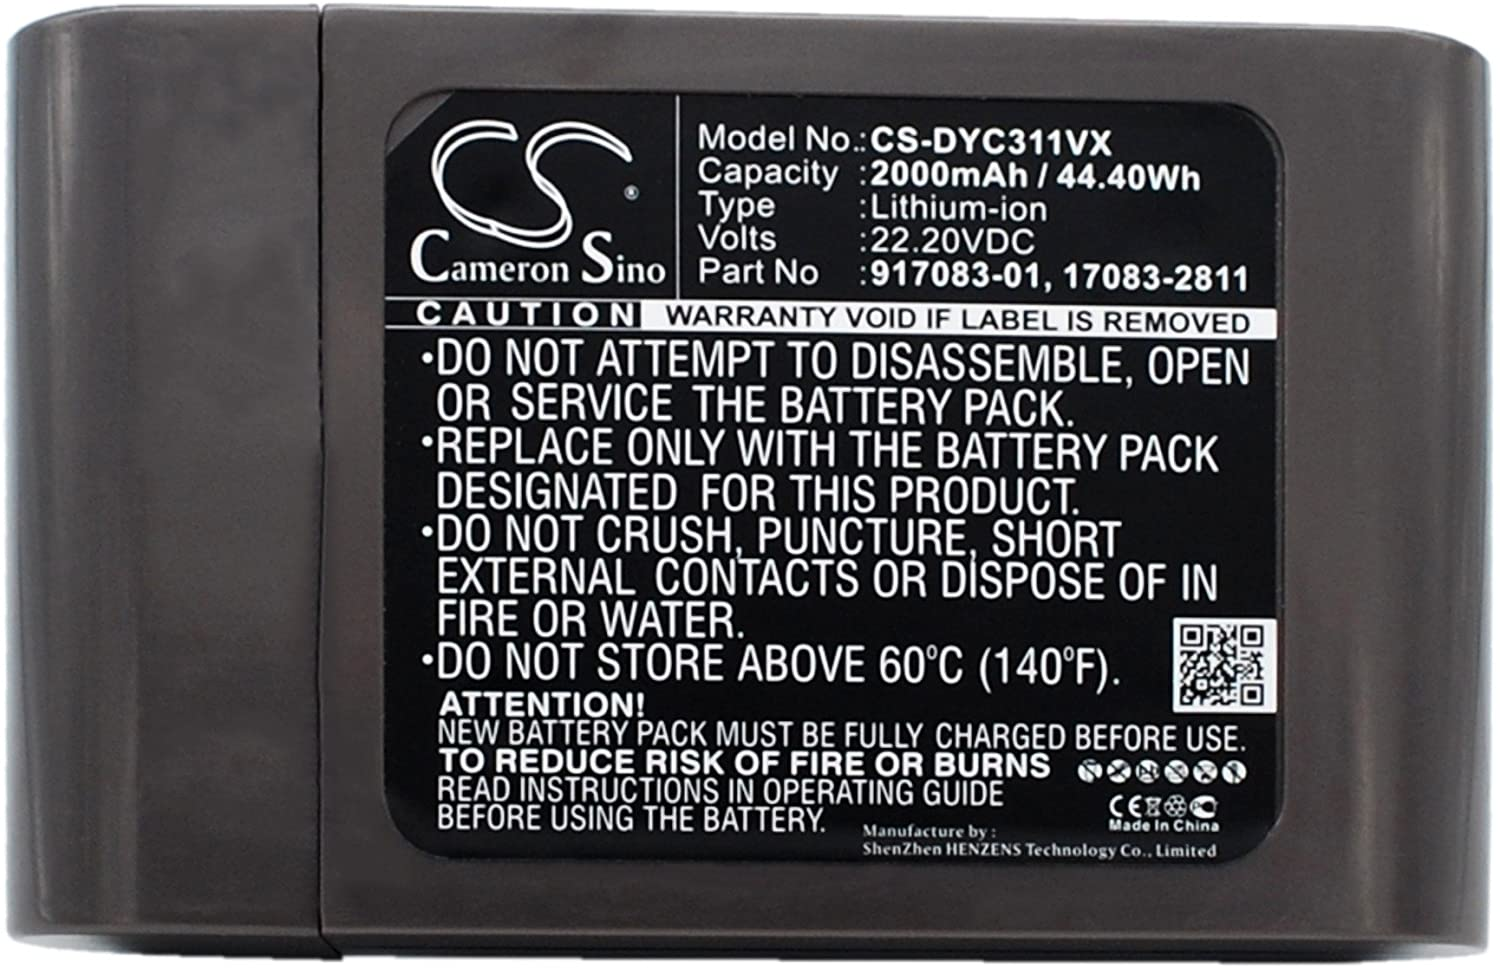 Replacement Battery for Dyson DC35 DC44 DC34 DC44 Animal DC31 DC31 Animal DC35 Exclusive DC44 Animal Fuchsia DC44 Animal Total Clean DC44 Exclusive 17083-2811